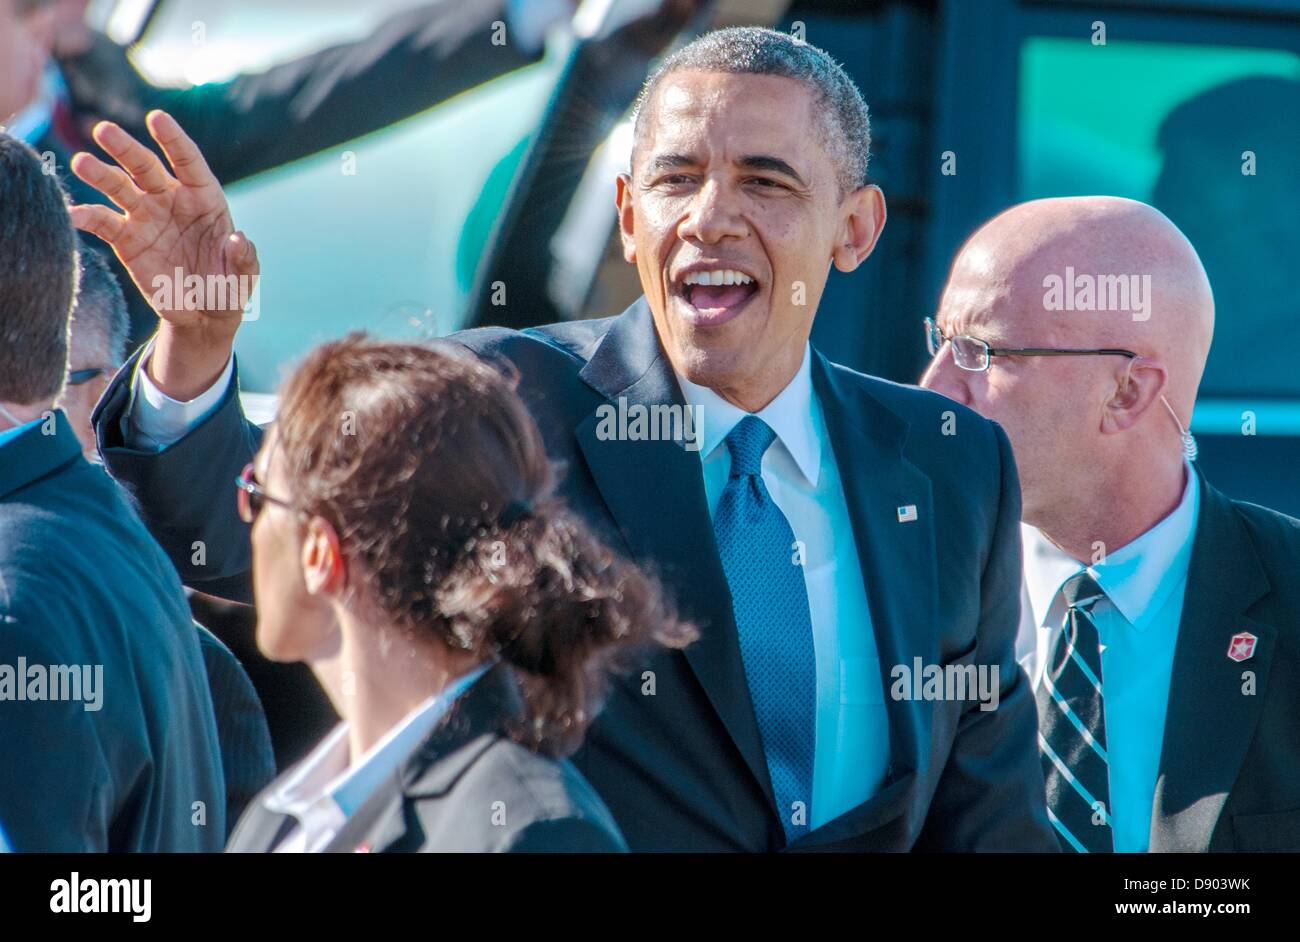 US President Barack Obama waves to the public after arriving at Moffett Federal Airfield on Air Force One June 6, - Stock Image